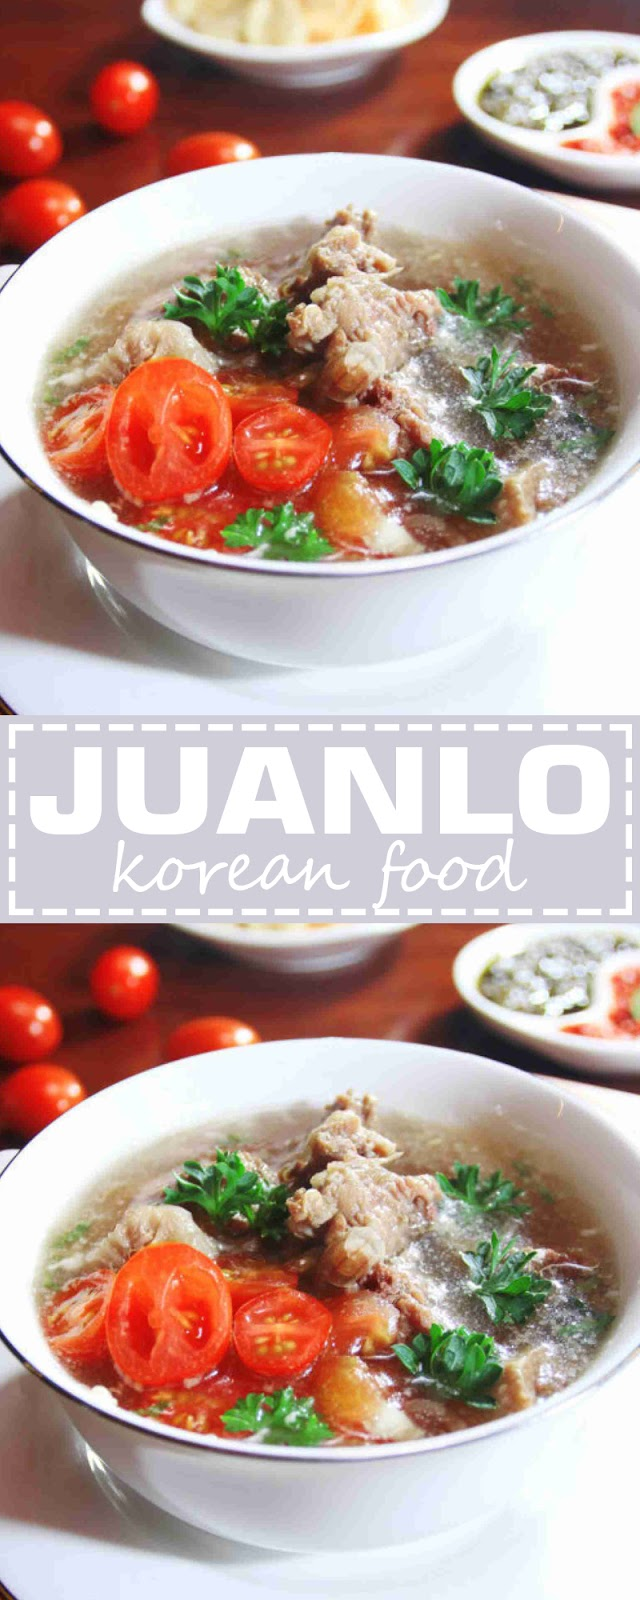 JUAN LO : Korean Food